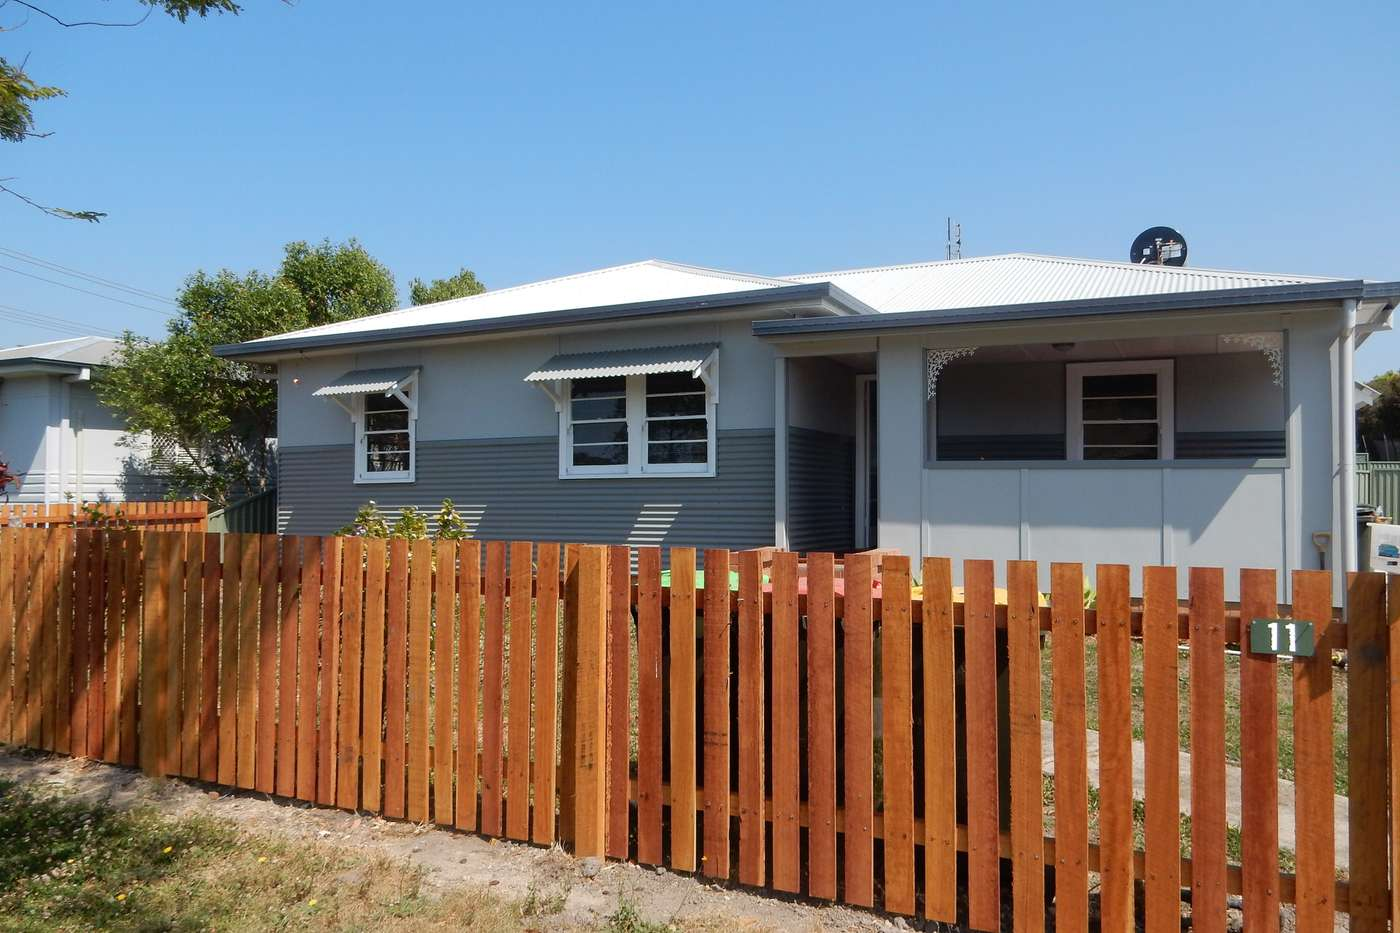 Main view of Homely house listing, 11 Azalea Avenue, Coffs Harbour, NSW 2450